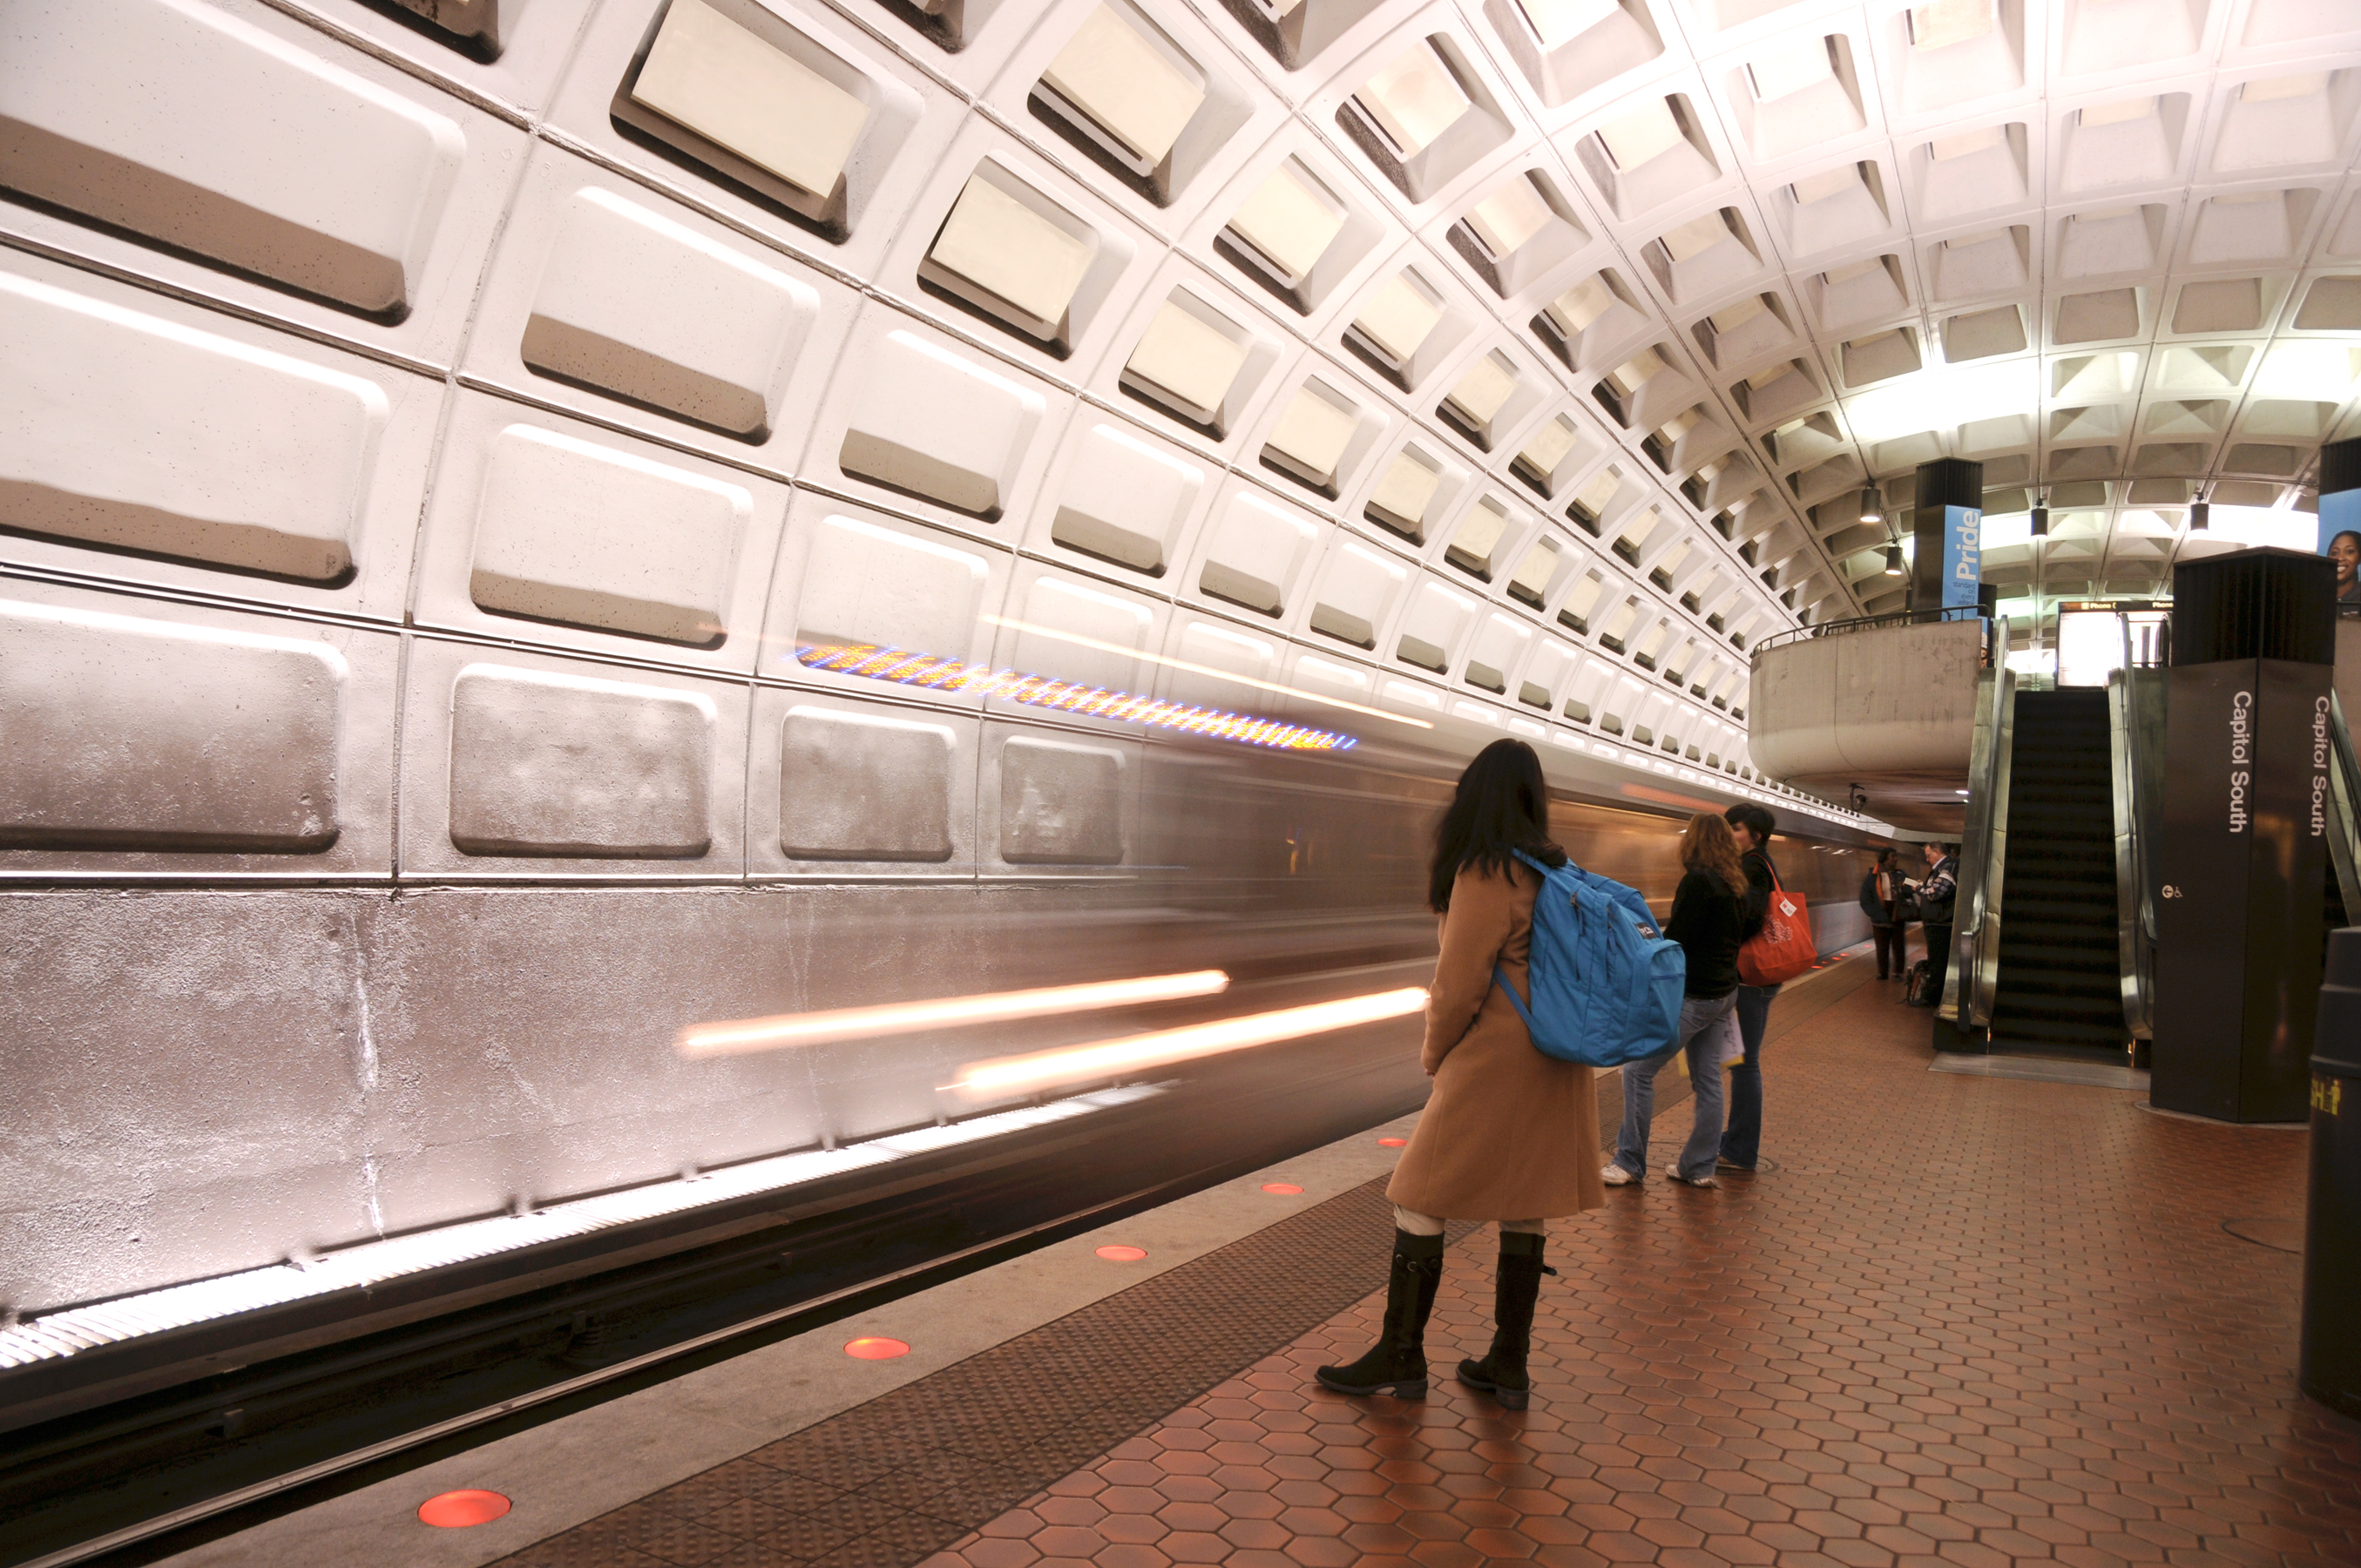 Va. agrees with feds: Metro safety commission needed